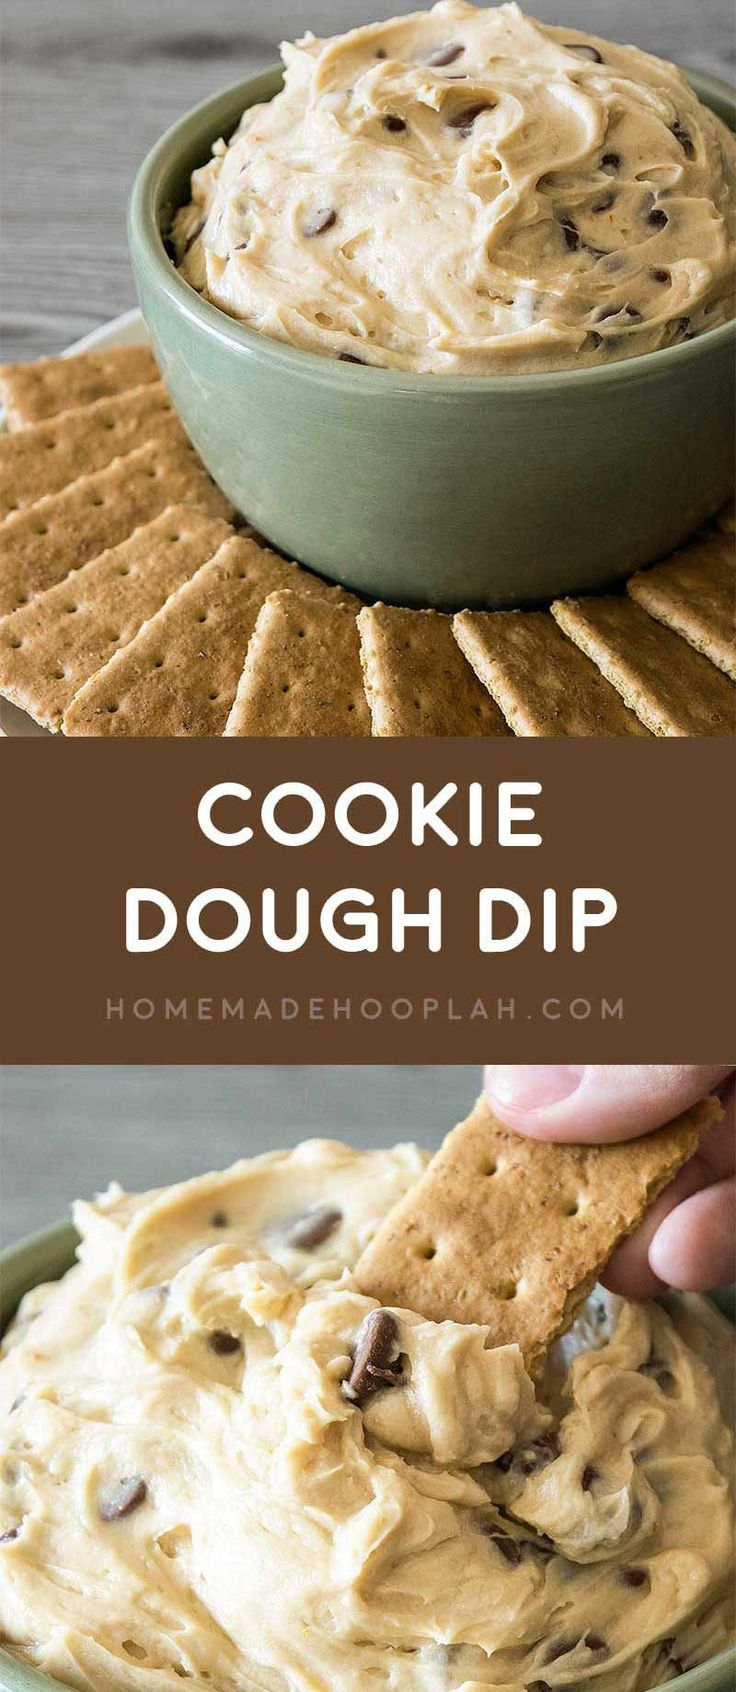 Cookie Dough Dip! Dazzle your guests by serving up dessert first with this ultra-creamy cookie dough dip with chocolate chips.